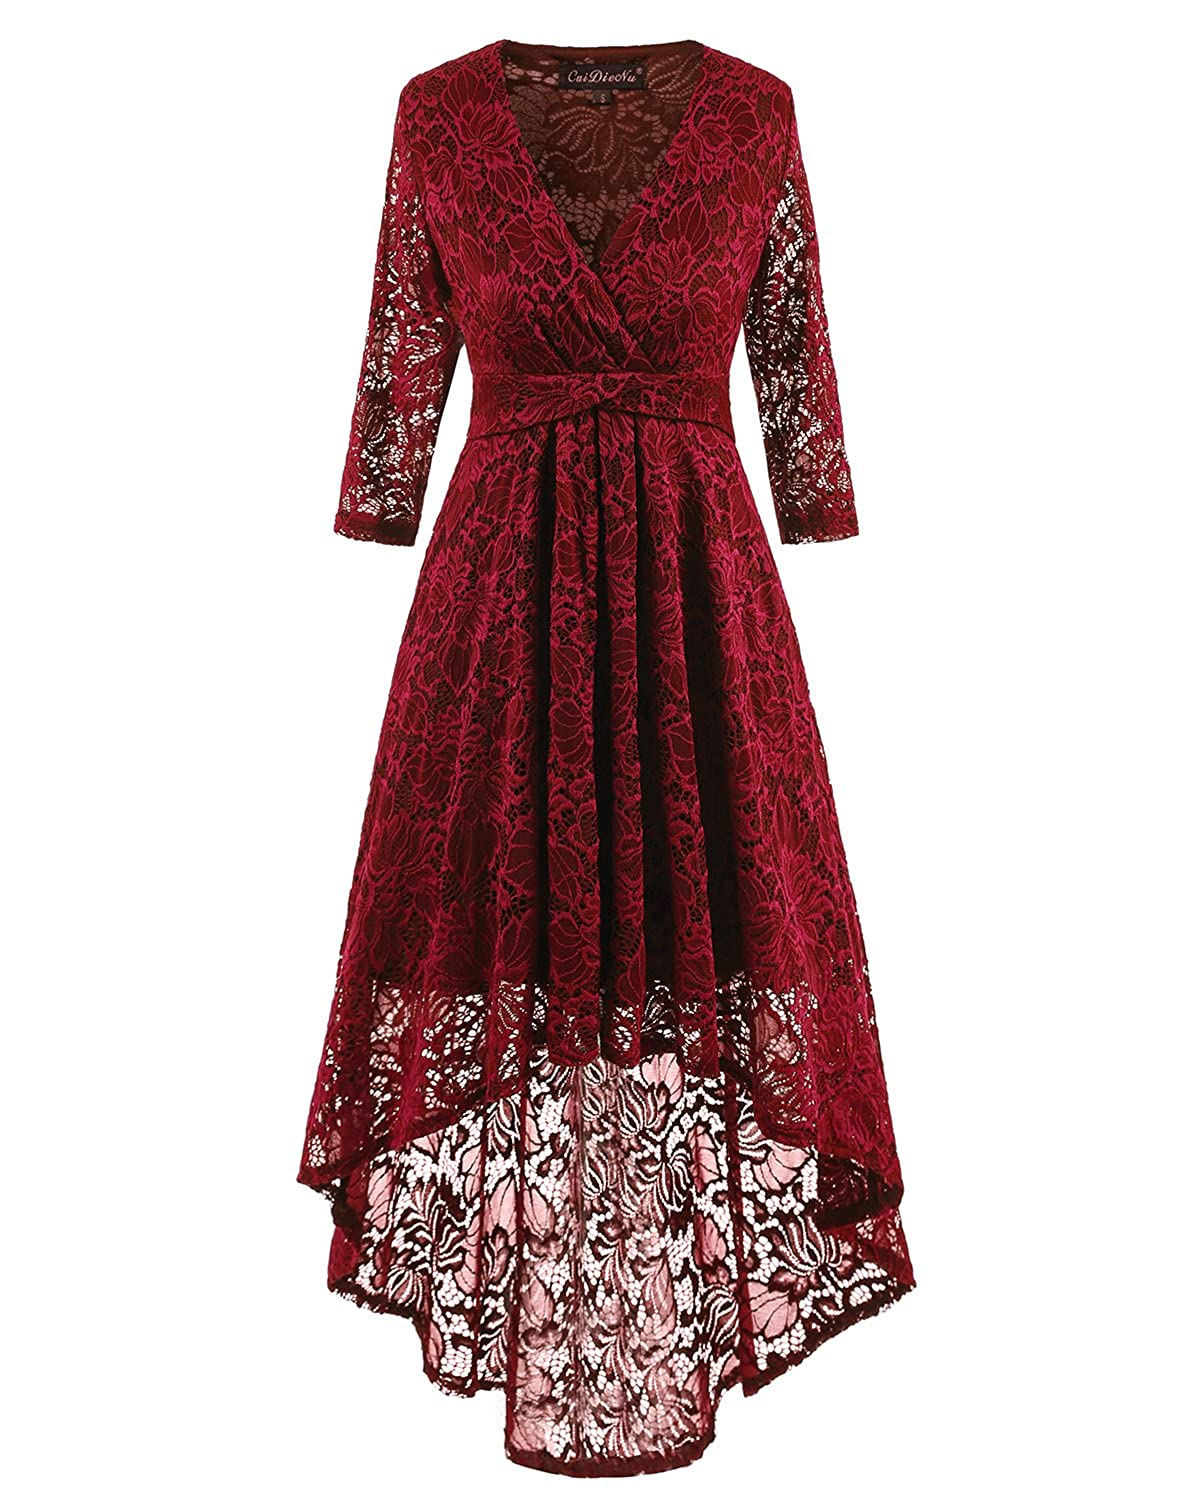 Adodress Women's Long Sleeve Lace Prom Dresses Formal Retro Vintage Swing Party Cocktail Dresses S-XXL